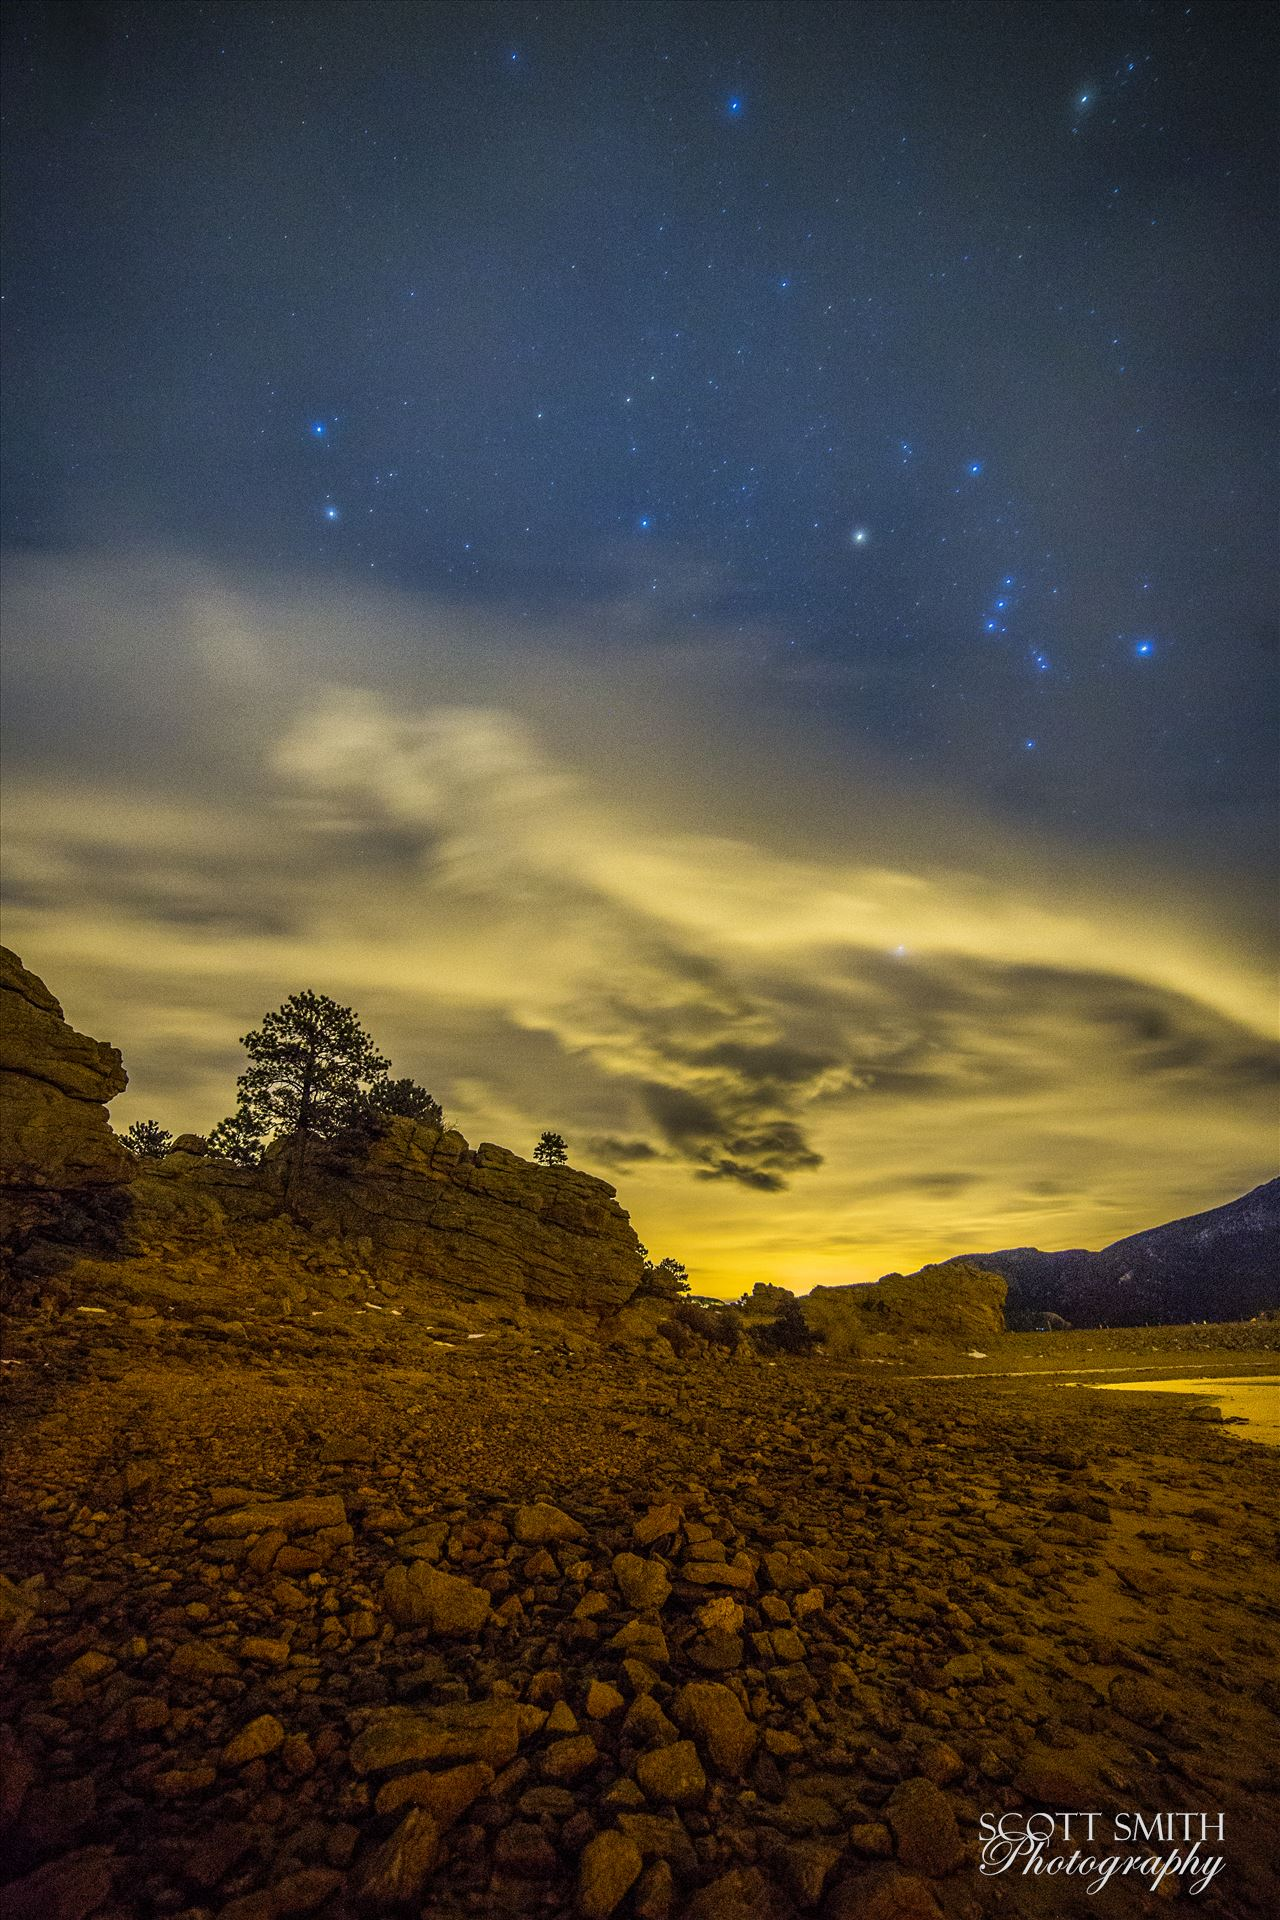 Mary's Lake At Night - Another long exposure from the shore of Mary's Lake a few miles near Estes Park, looking east towards Denver. by D Scott Smith